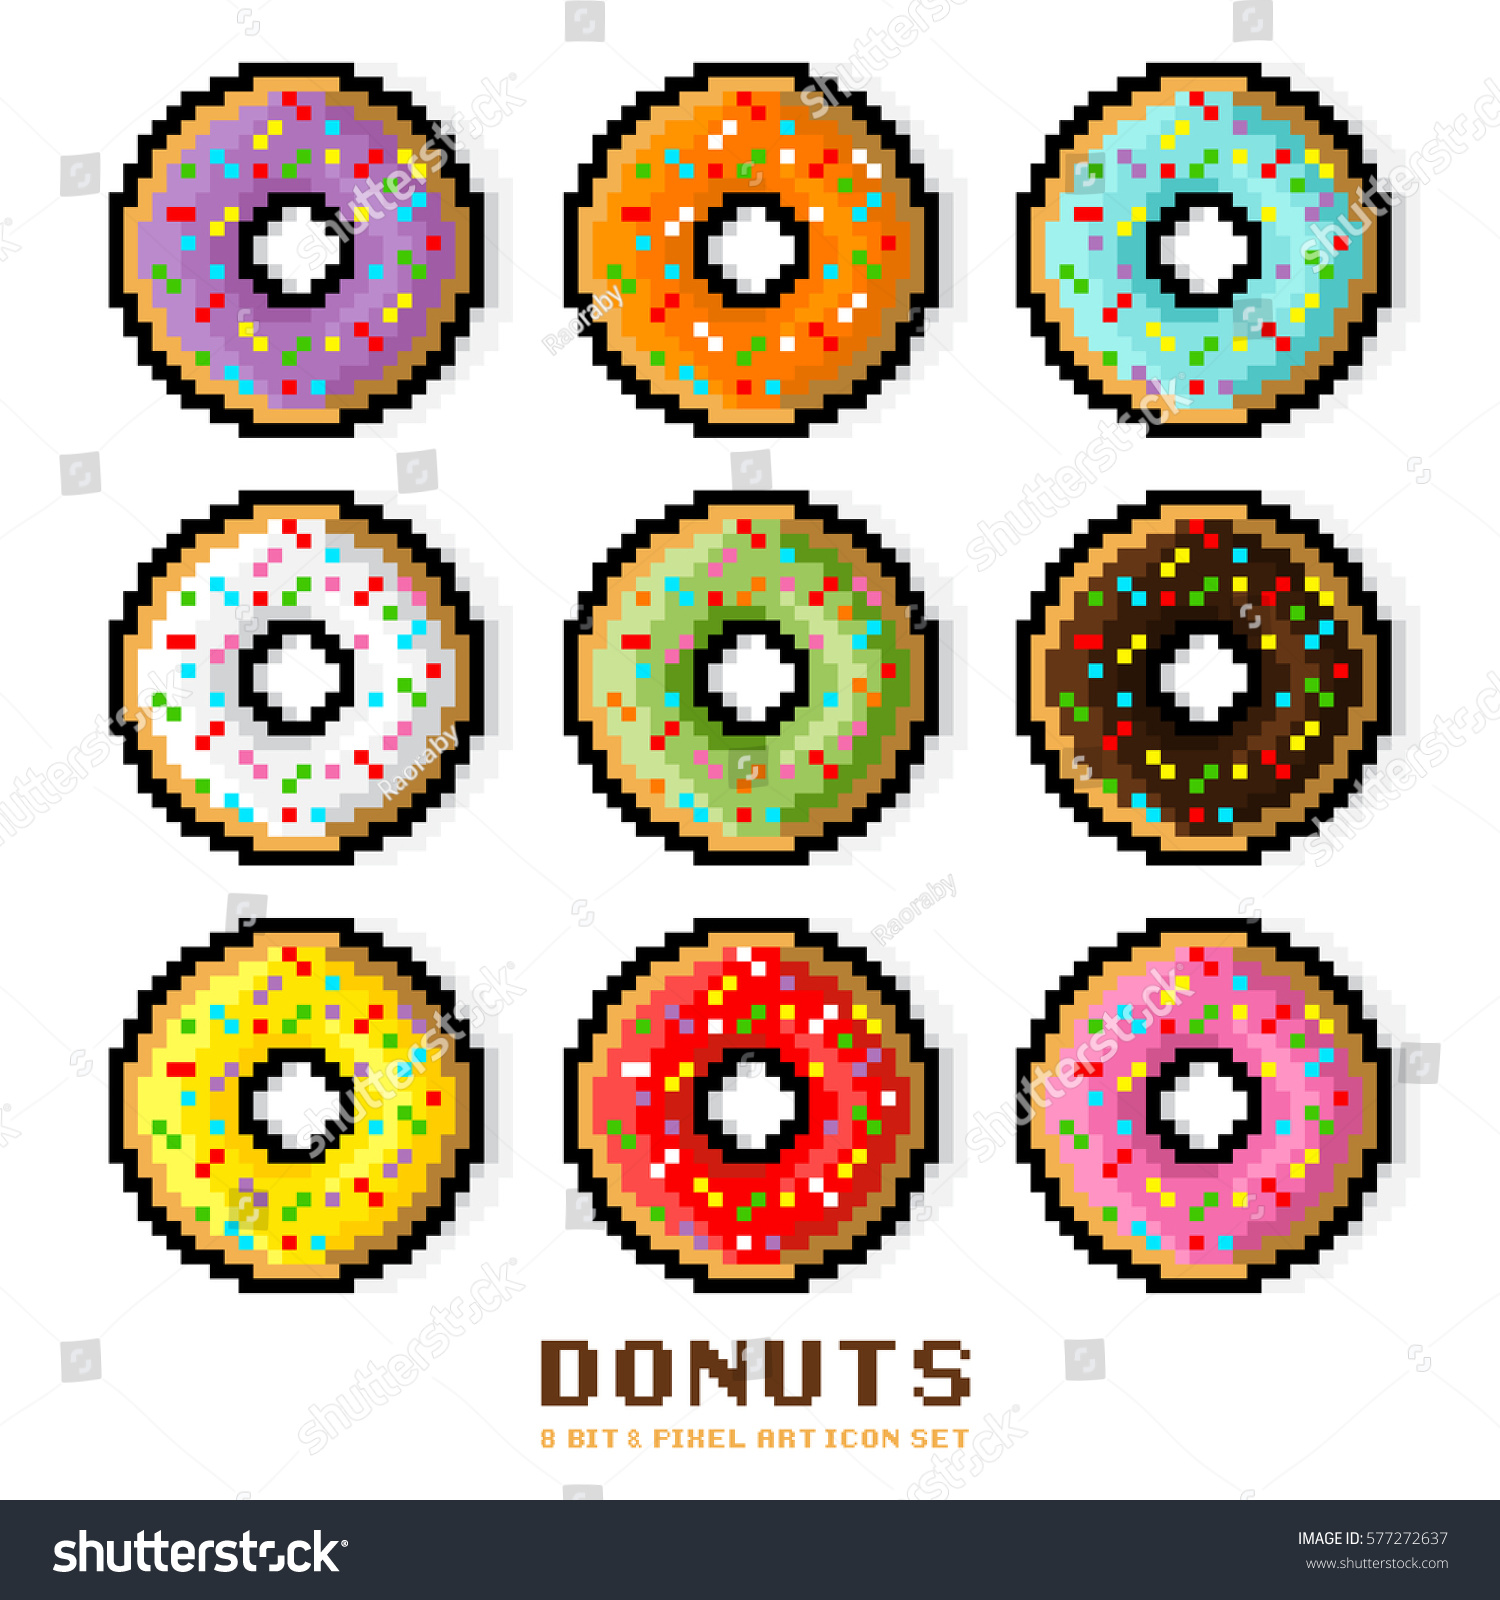 Vector Donut Set Colored Donuts With Sprinkles Dessert And Sweets In A 8 Bit